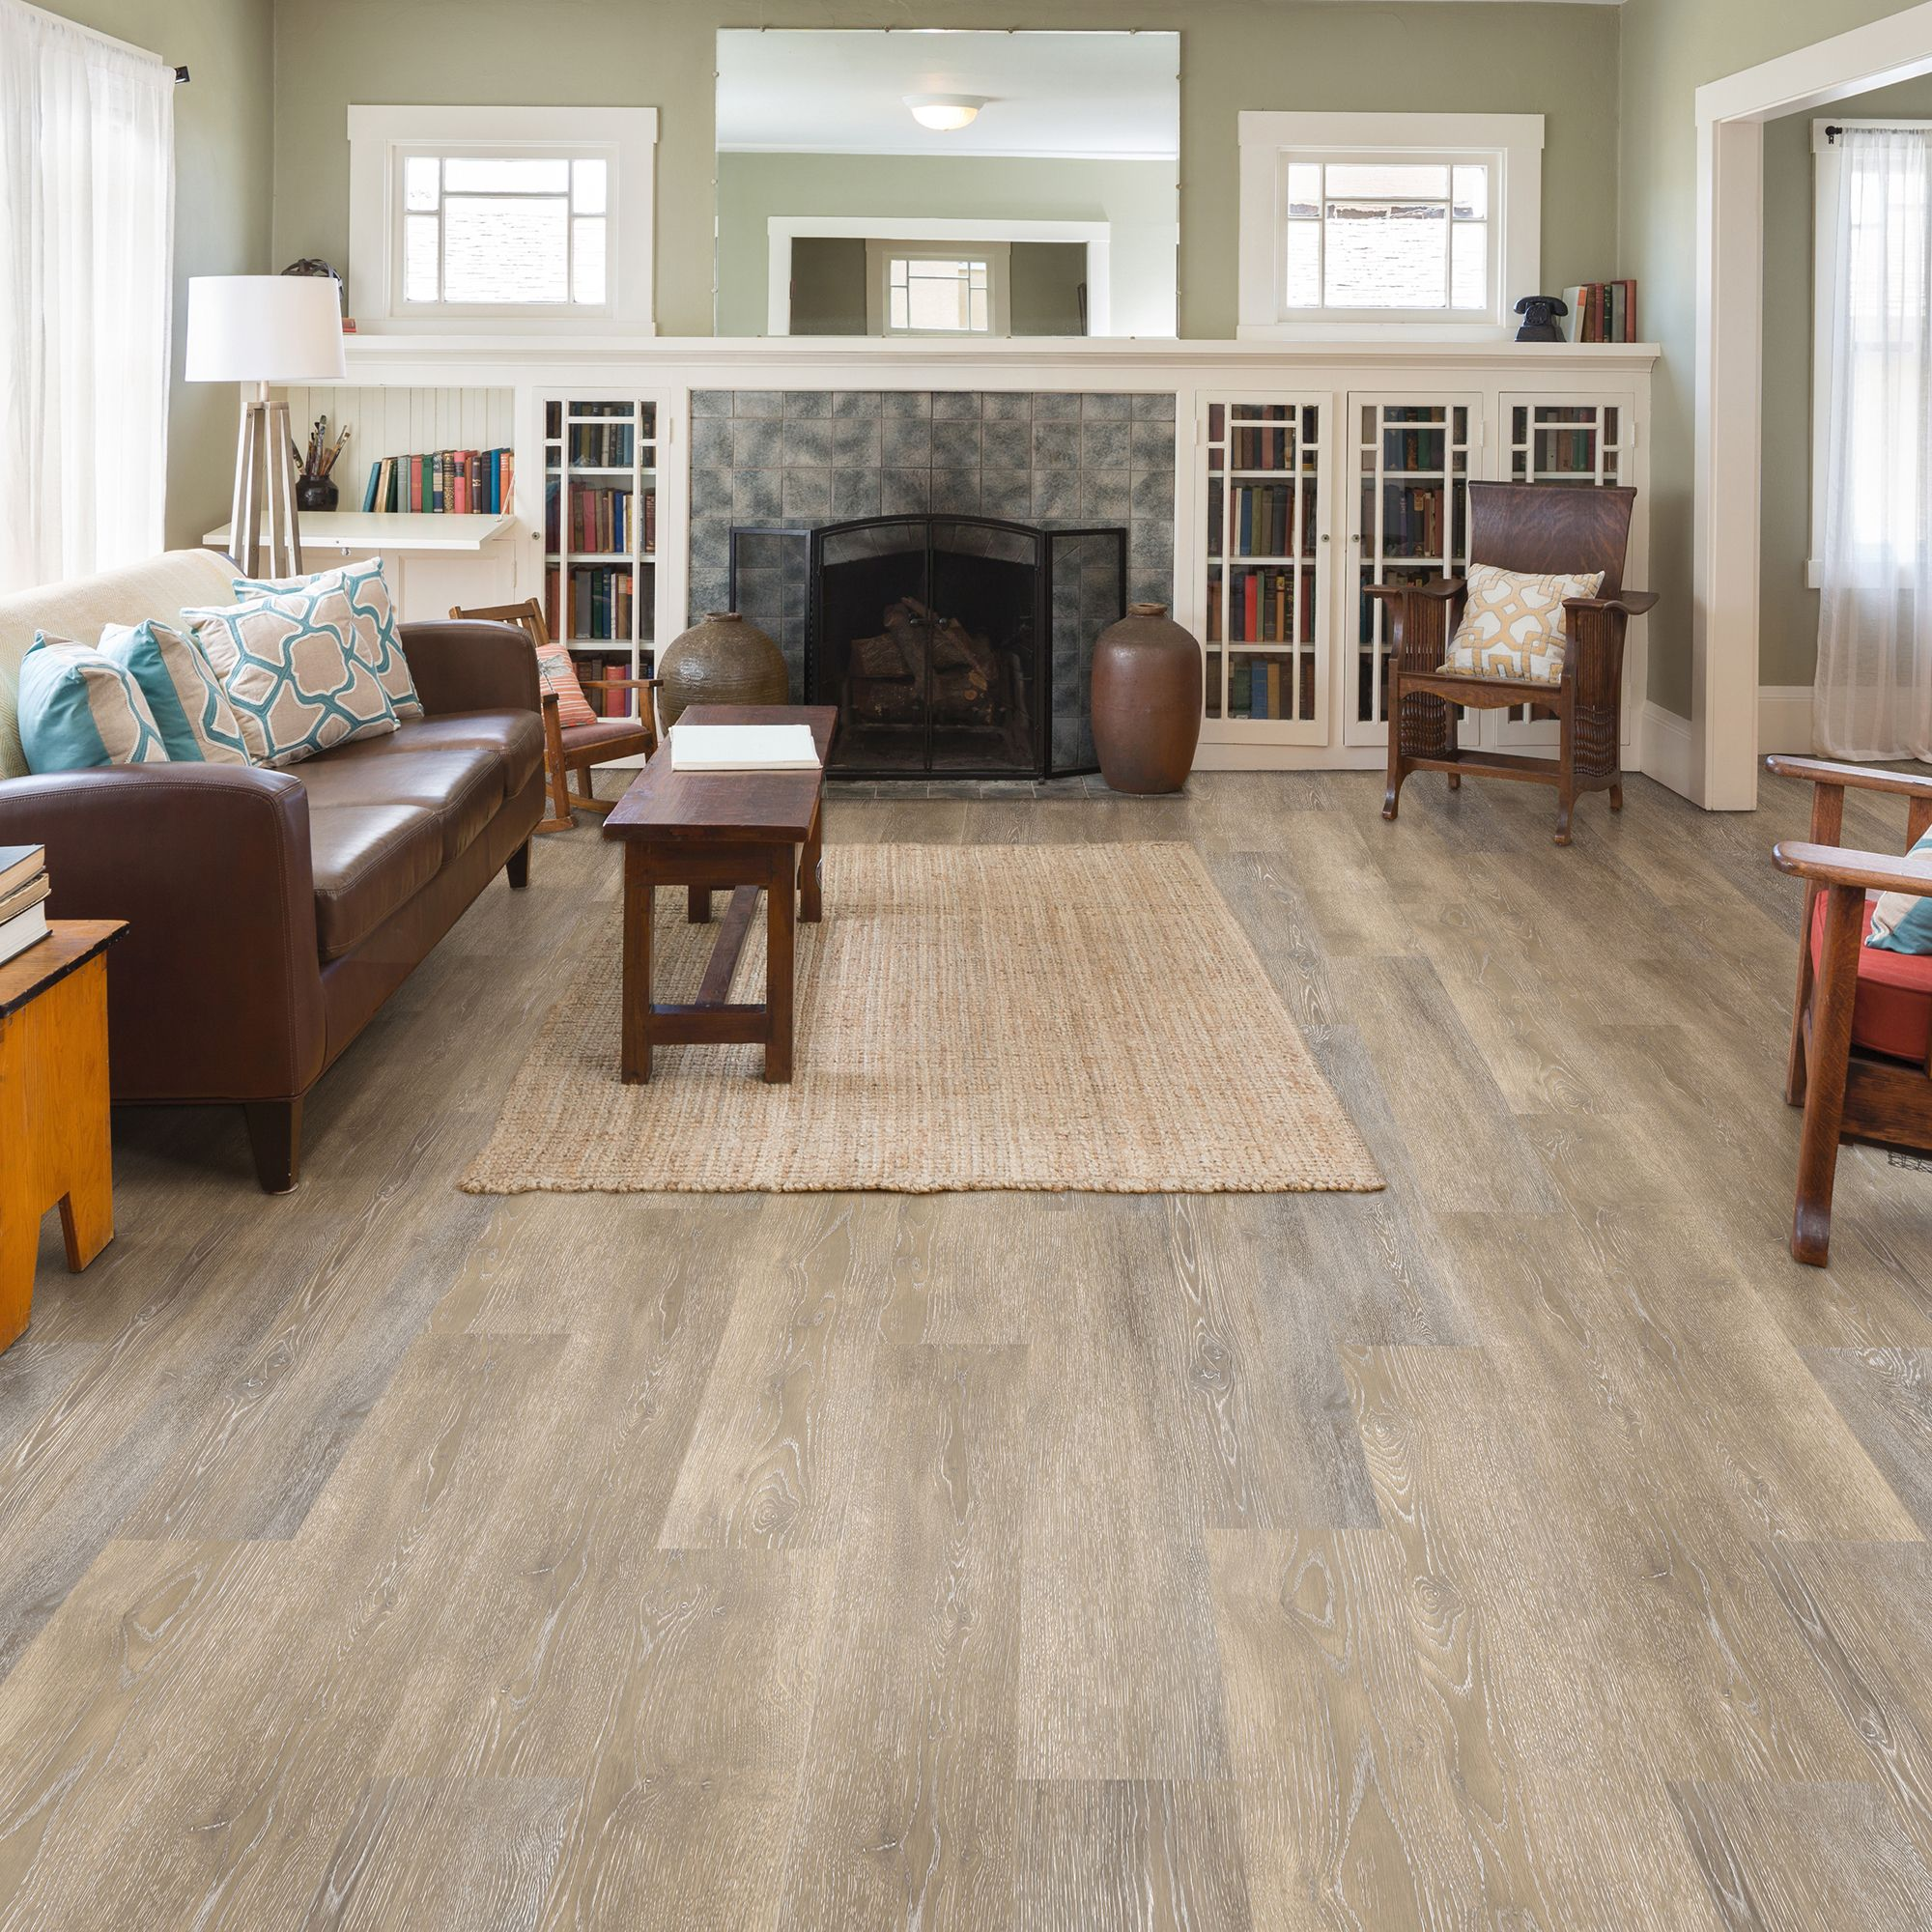 Flooring Gift Certificate : Allure isocore pin to win sweepstakes dream home ideas